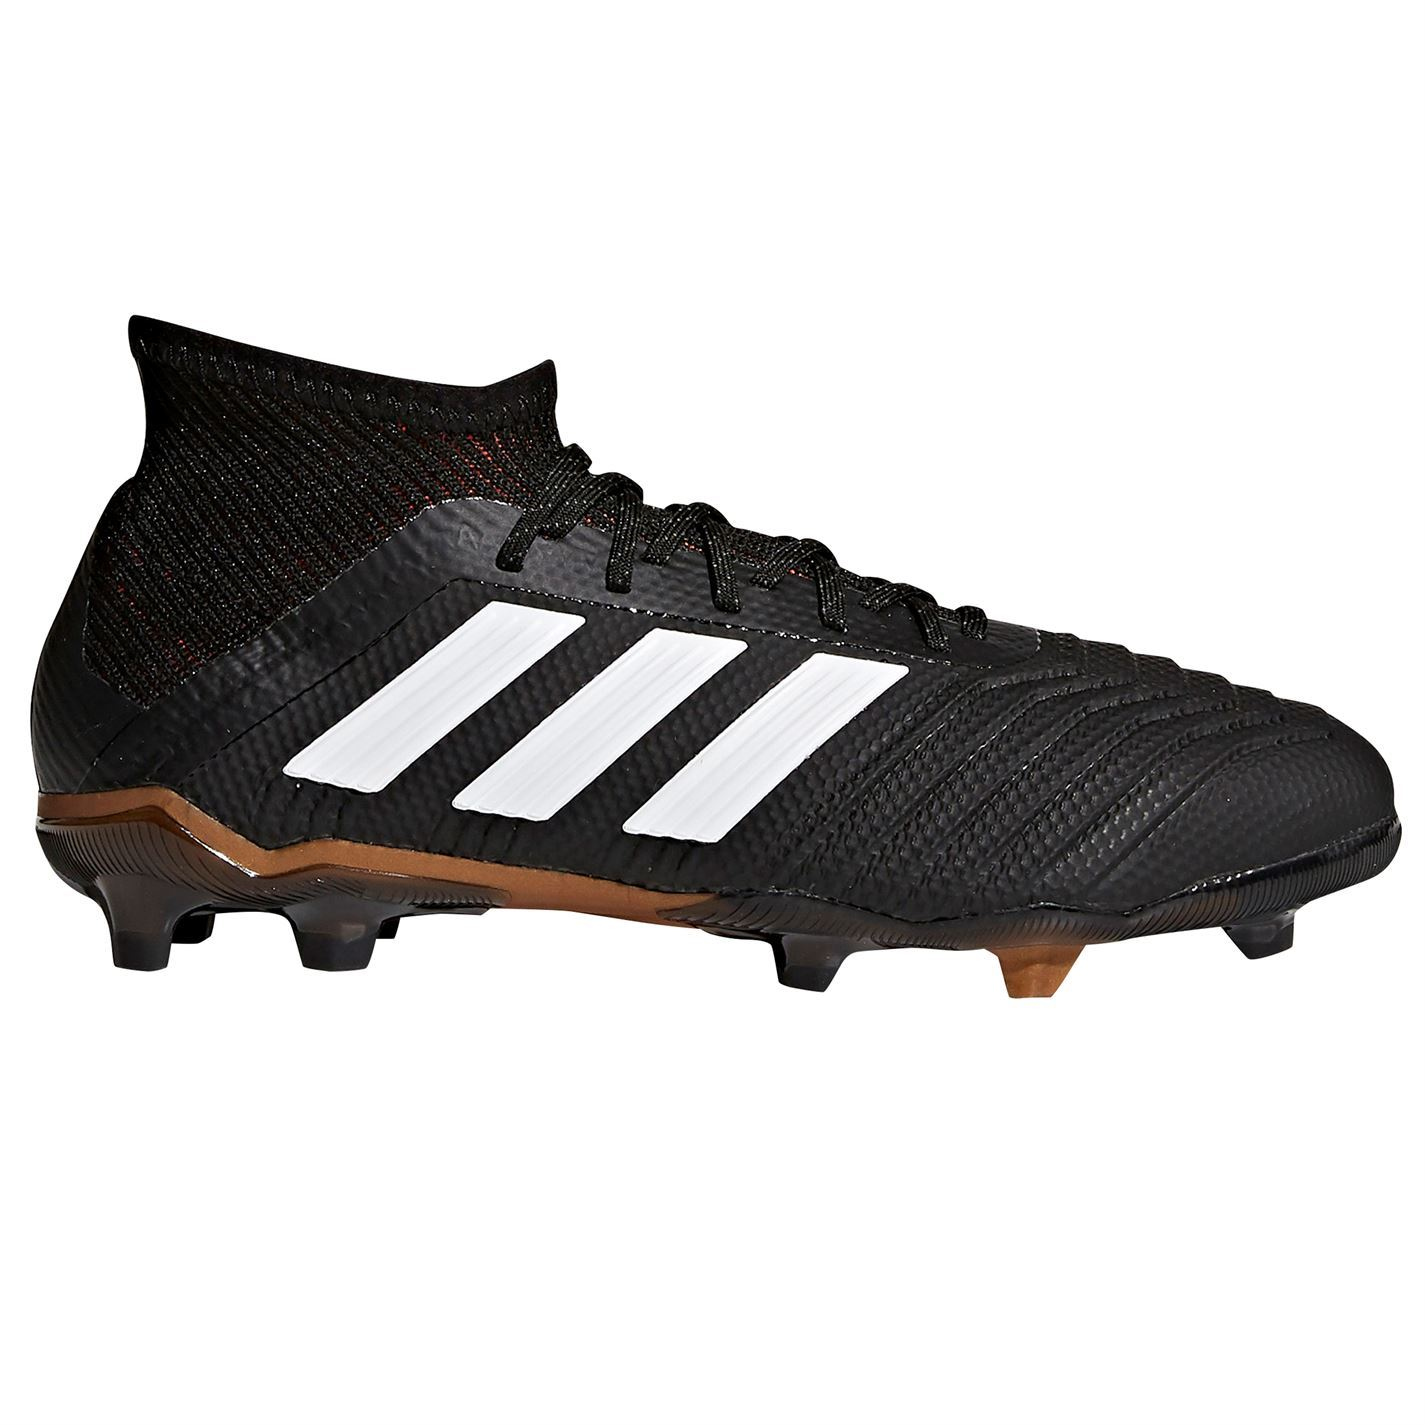 d30a70a90 ... adidas Predator 18.1 Firm Ground Football Boots Childs Black Soccer  Shoes Cleats ...